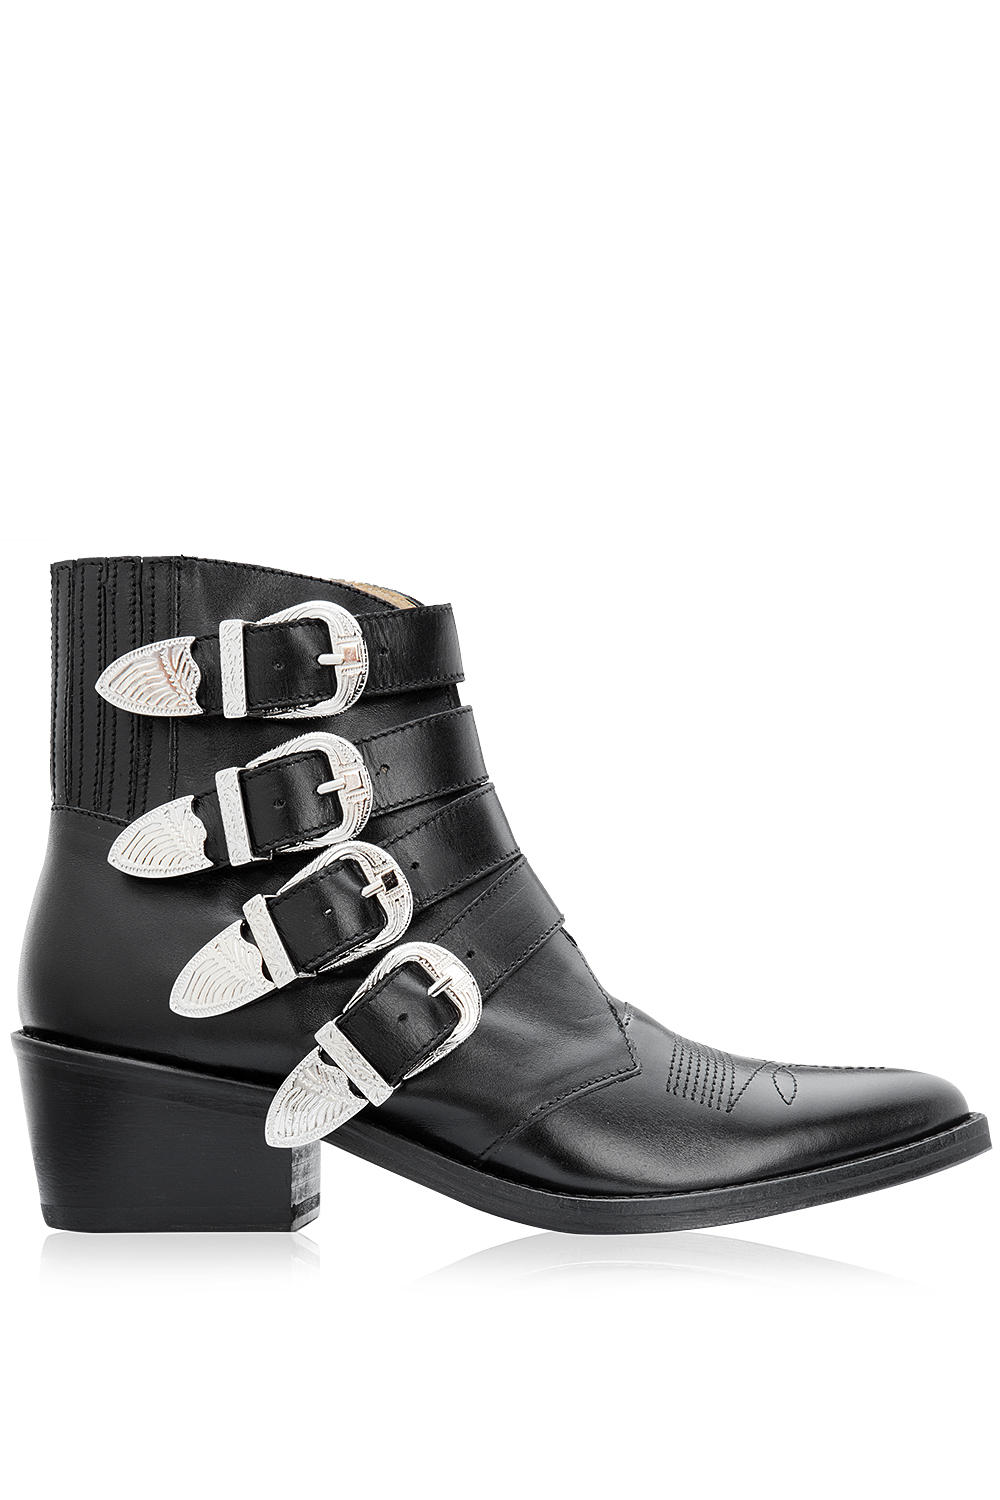 New Seasonal Sales are Here! 10% Off Pony-style calfskin ...